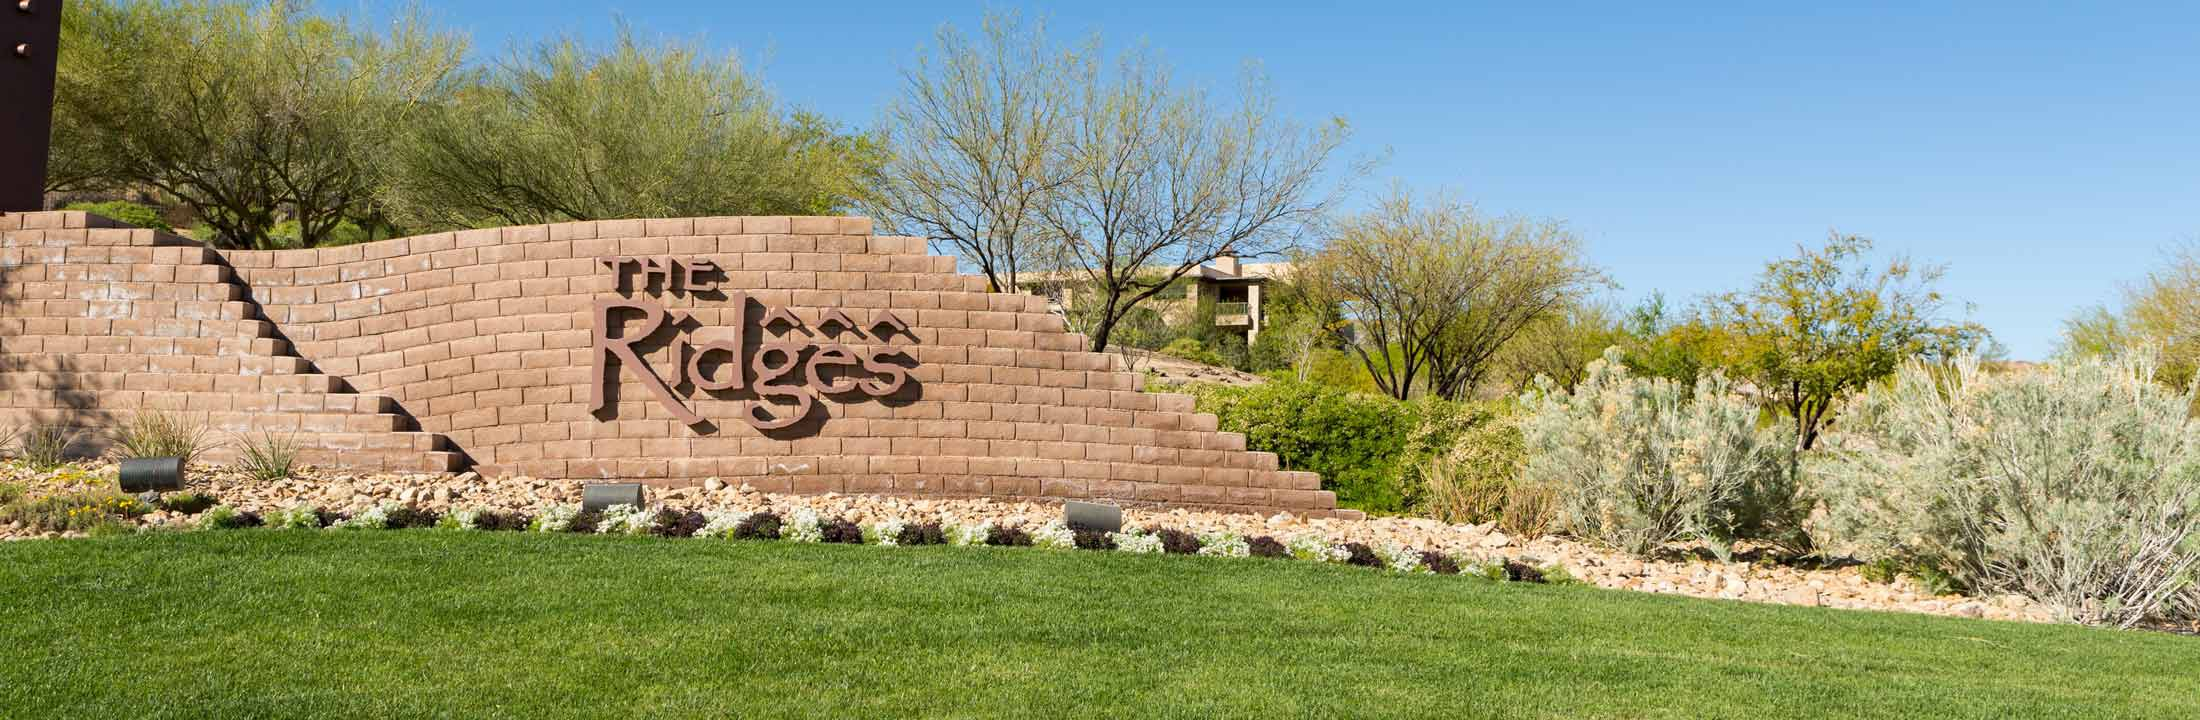 the-ridges-homes-for-sale-las-vegas-summerlin